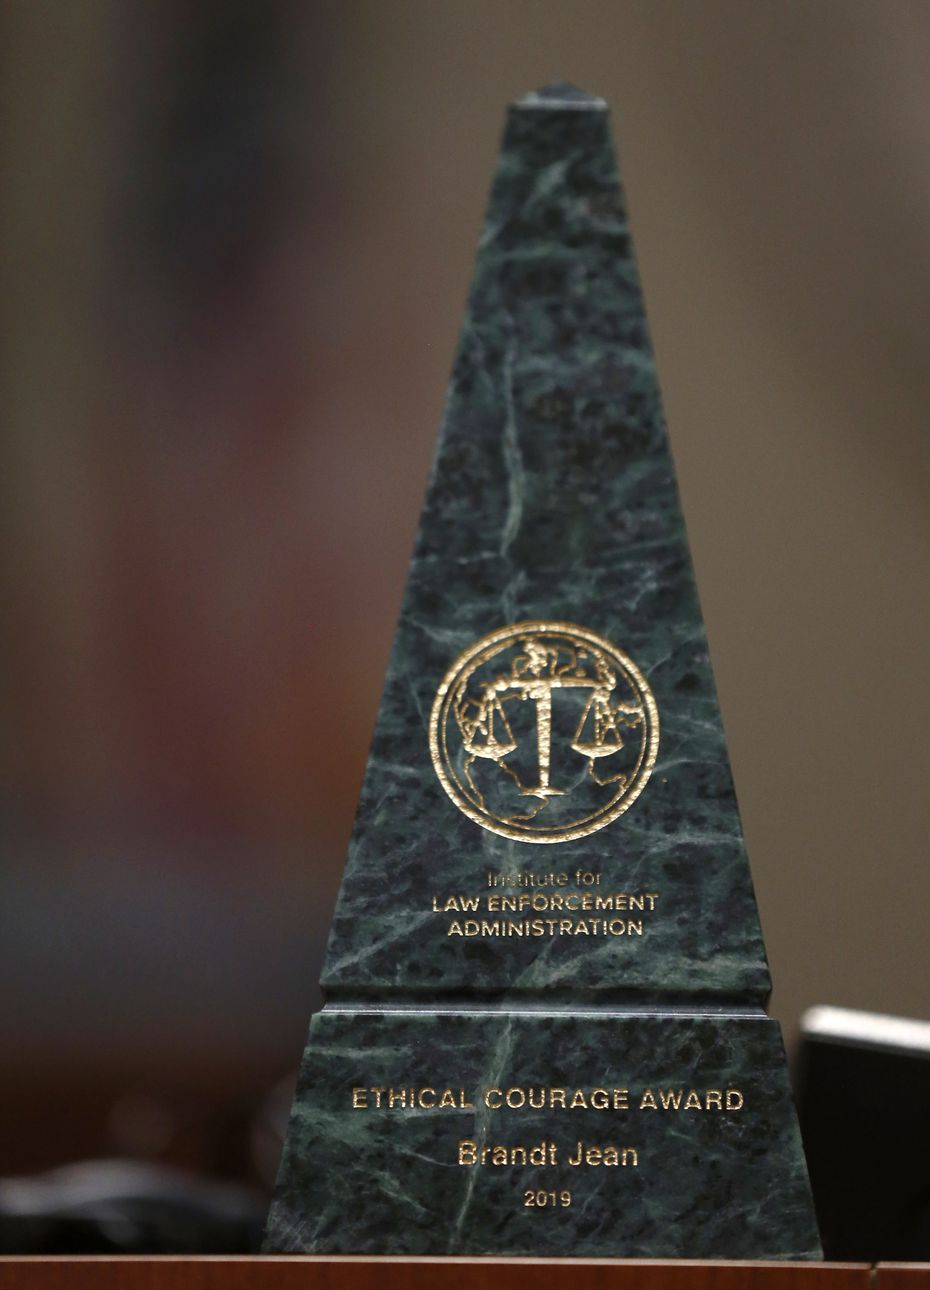 The 2019 Ethical Courage Award was presented to Brandt Jean for his acts of forgiveness following the trial of his brother Botham's killer.